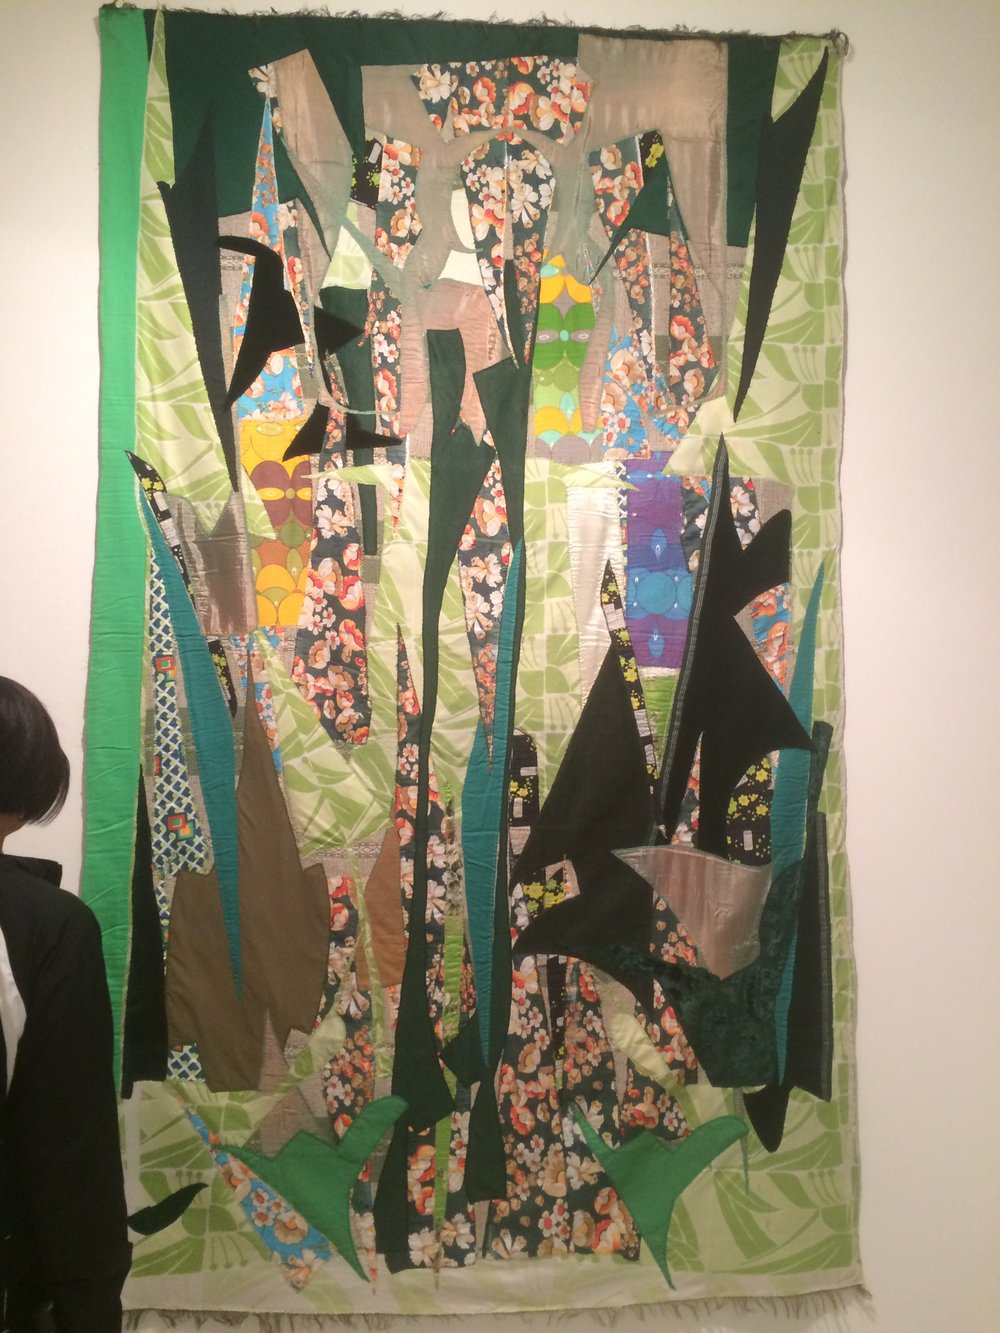 Great textile piece at NADA!